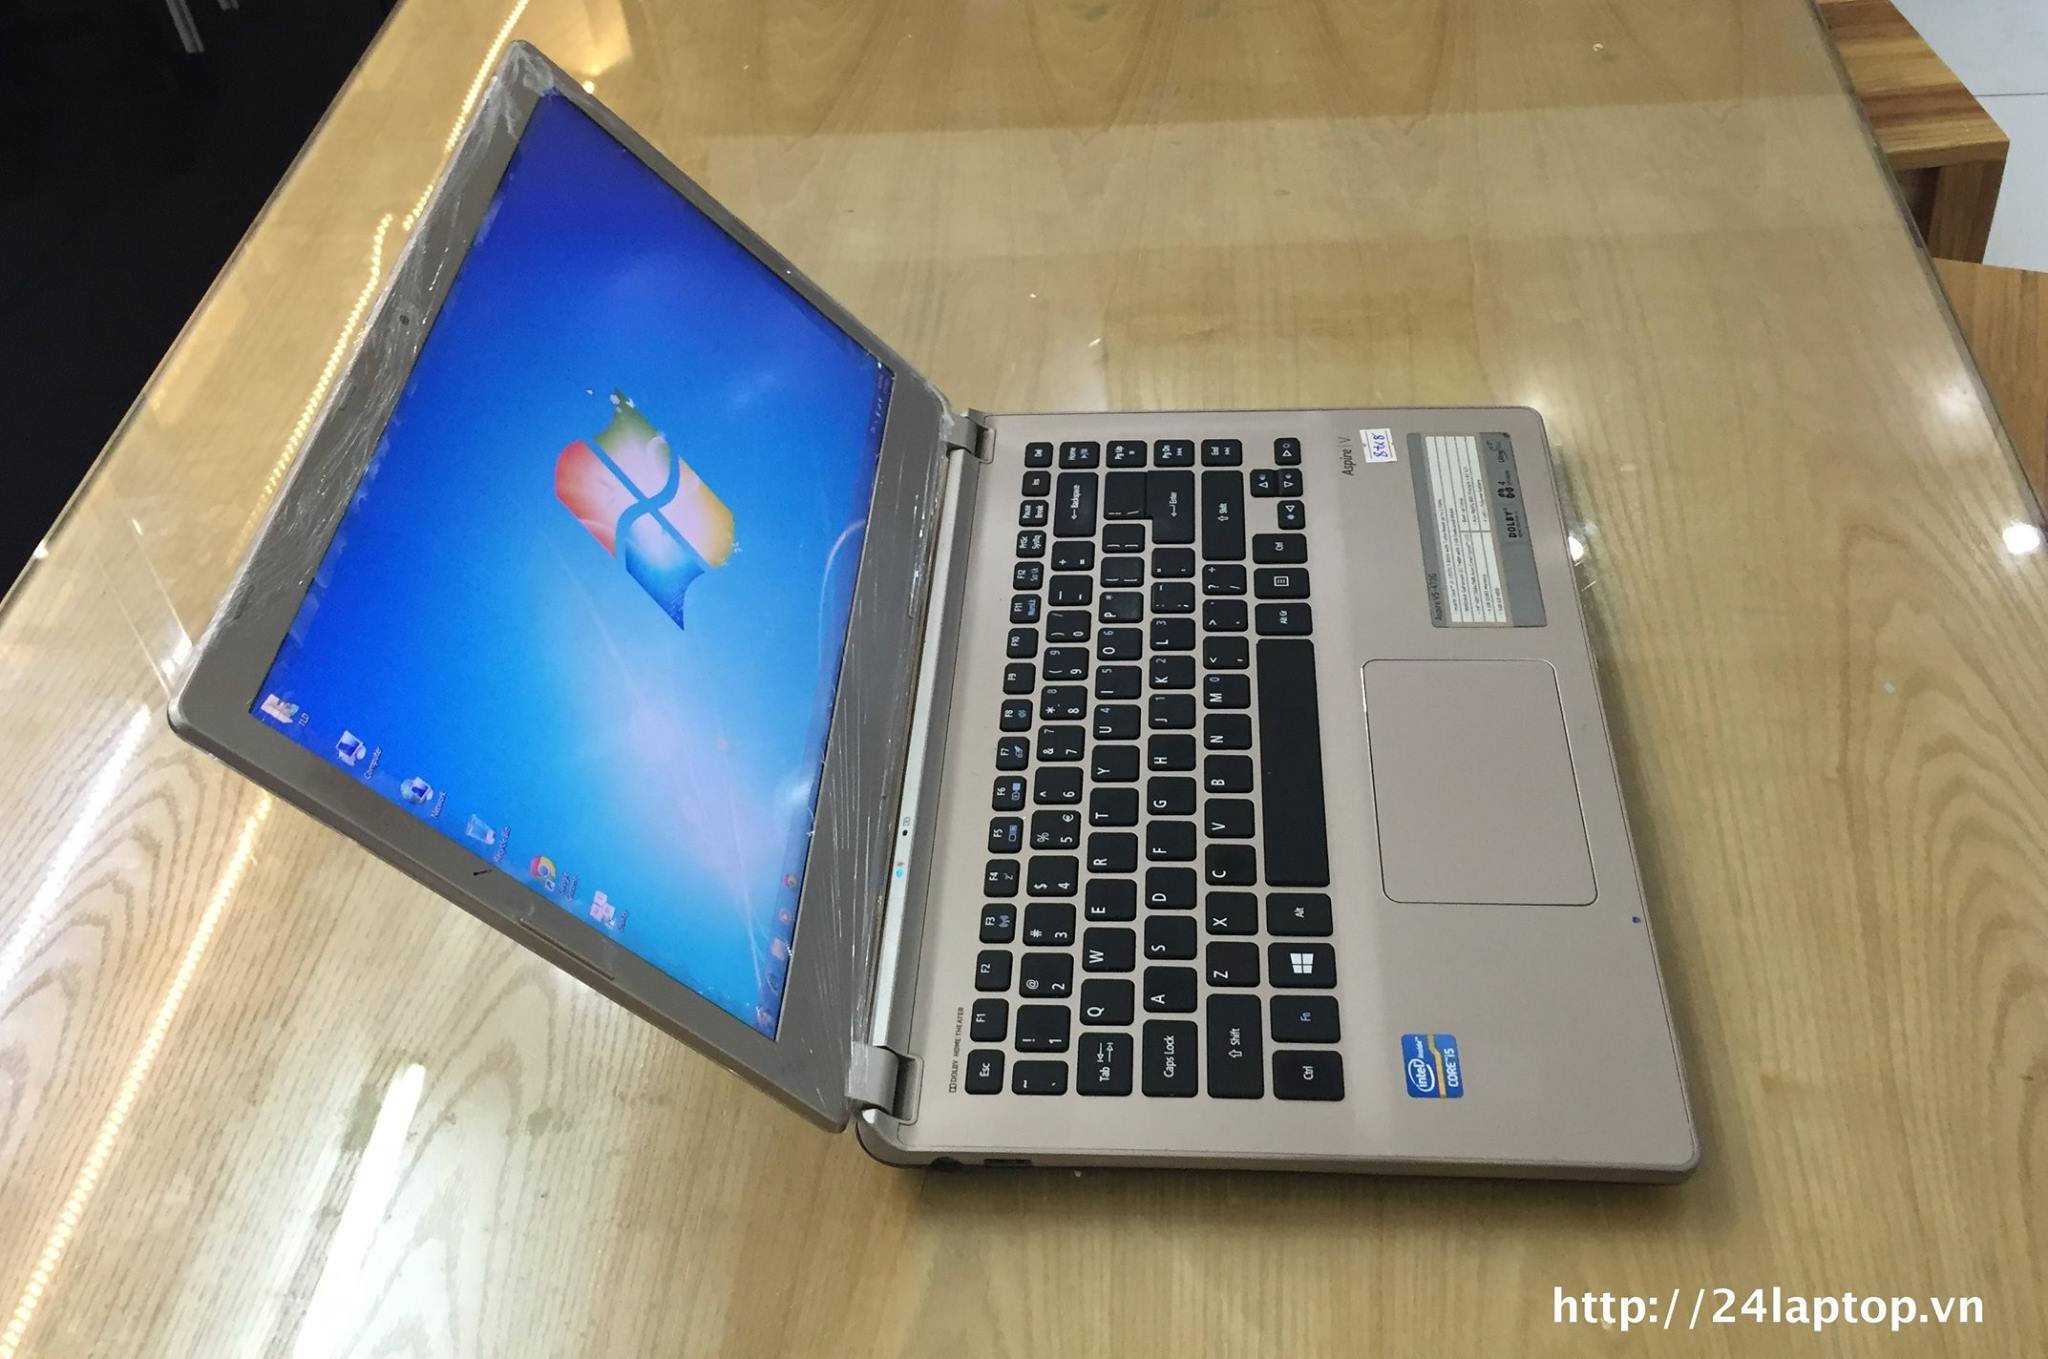 Laptop Acer Aspire V5-472G.jpg